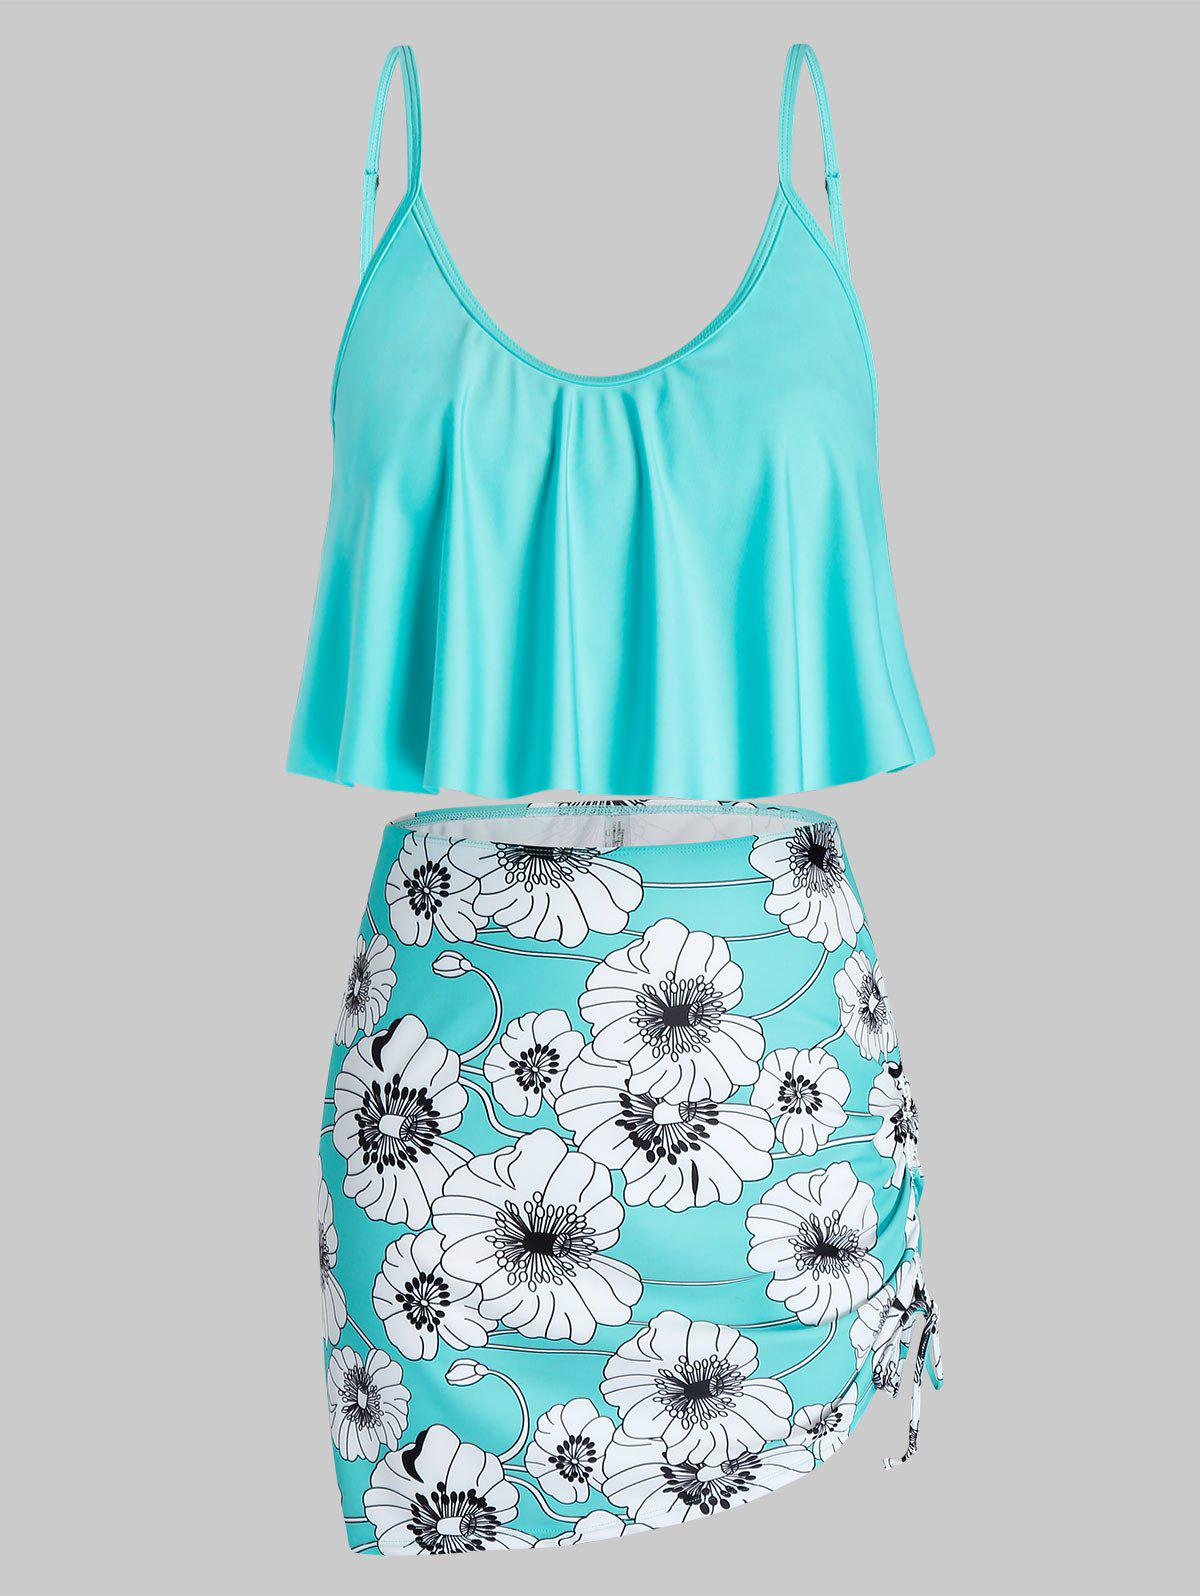 Chic Plus Size Floral Print Ruffled Cinched Three Piece Swimsuit